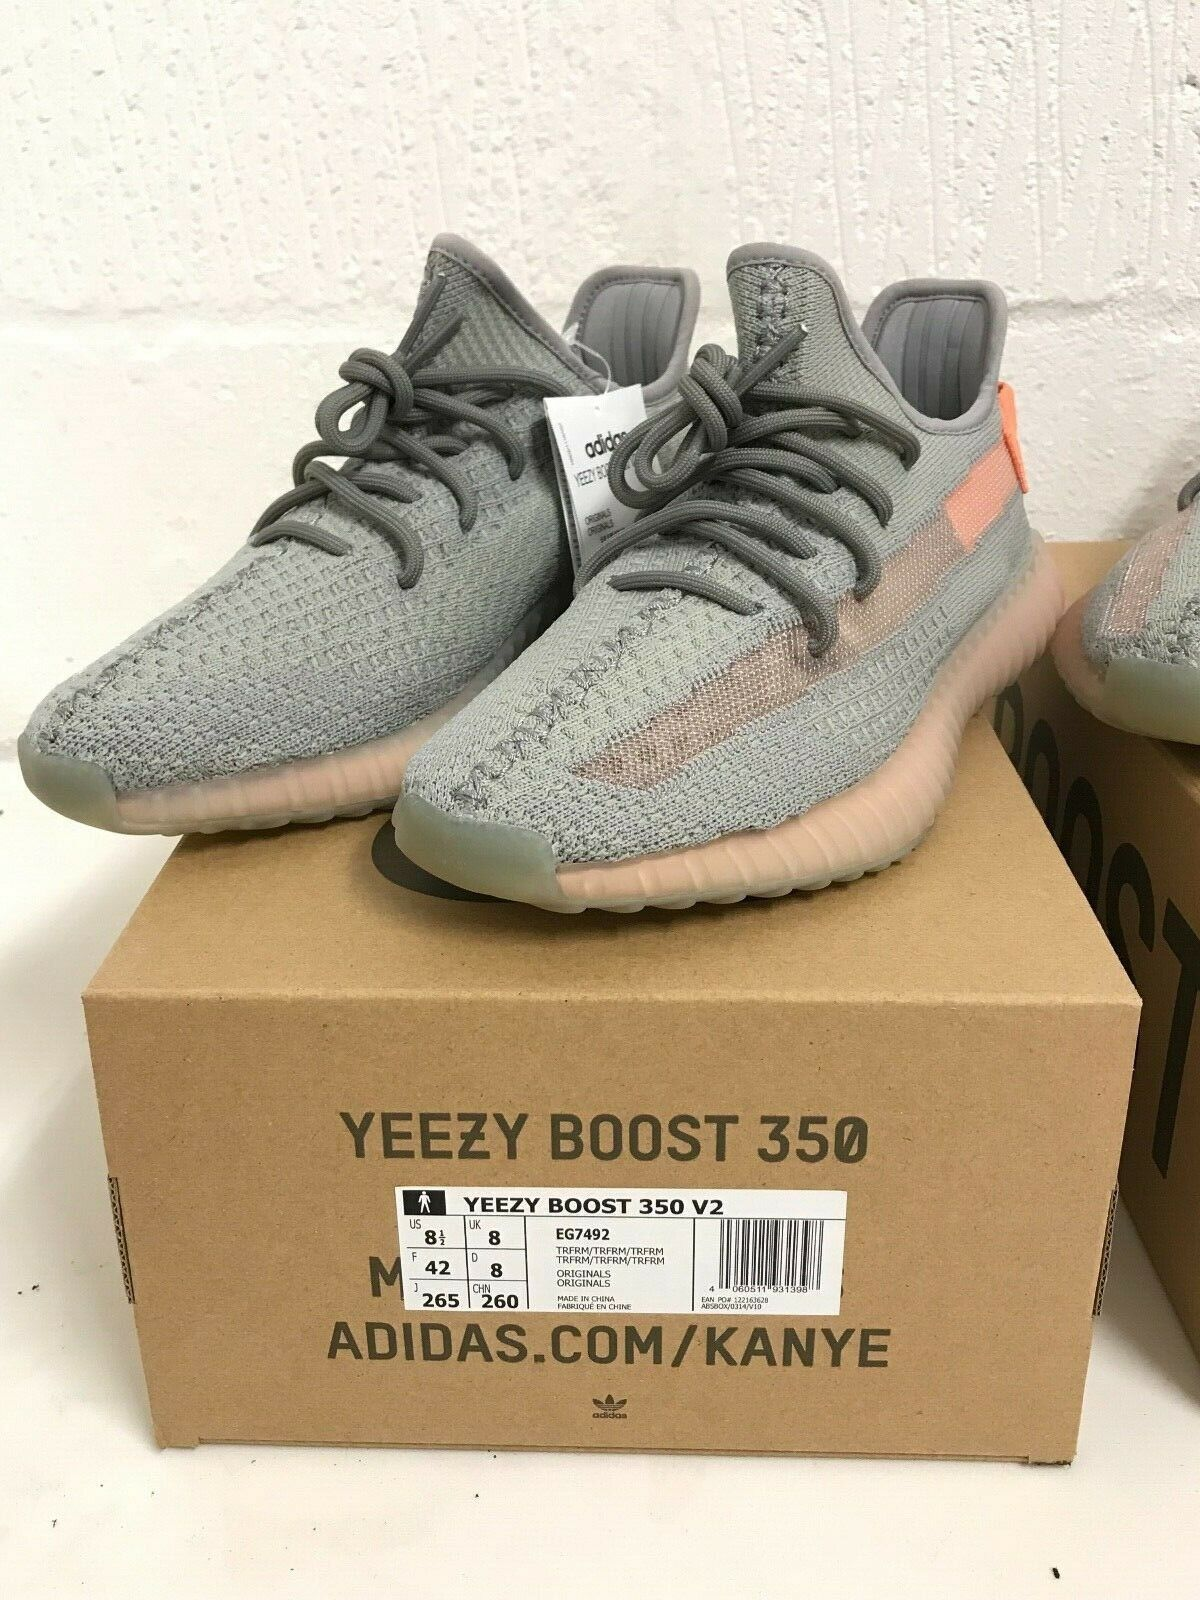 Adidas Yeezy Boost 350 V2  Grey TRFM EG7492 Sizes 3 4.5 5 5.5 6 static 3m 700 image 7